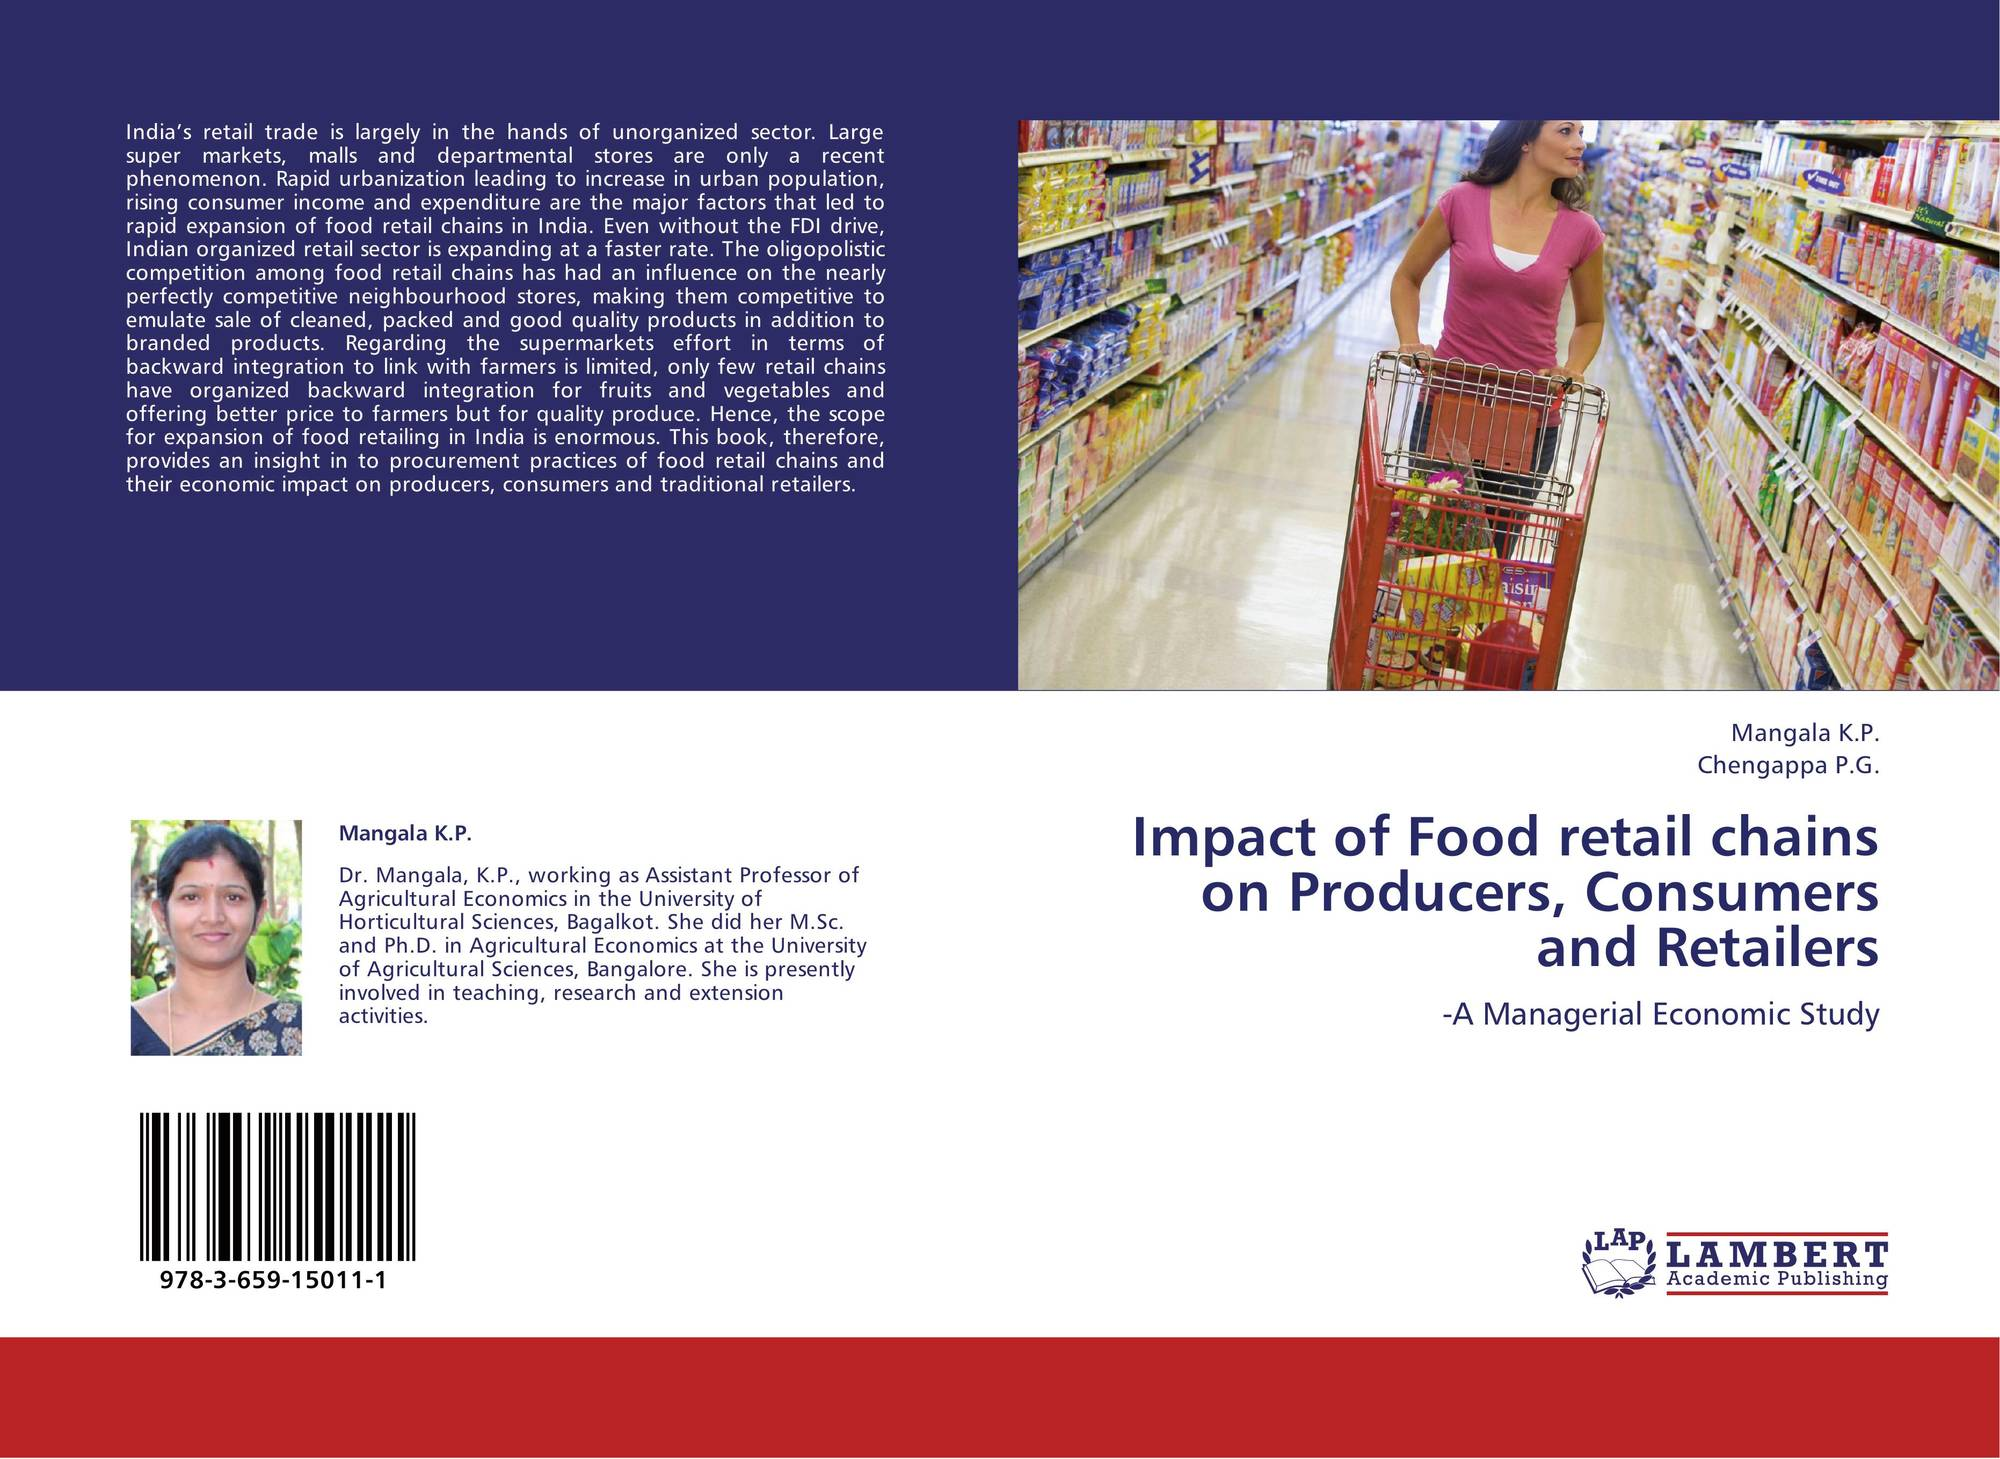 literature view impact on organised retail and unorganised retail sector Impact of fdi on unorganised retail sector of india impact of fdi on organized retail on unorganized sector in would give a more generalized view.